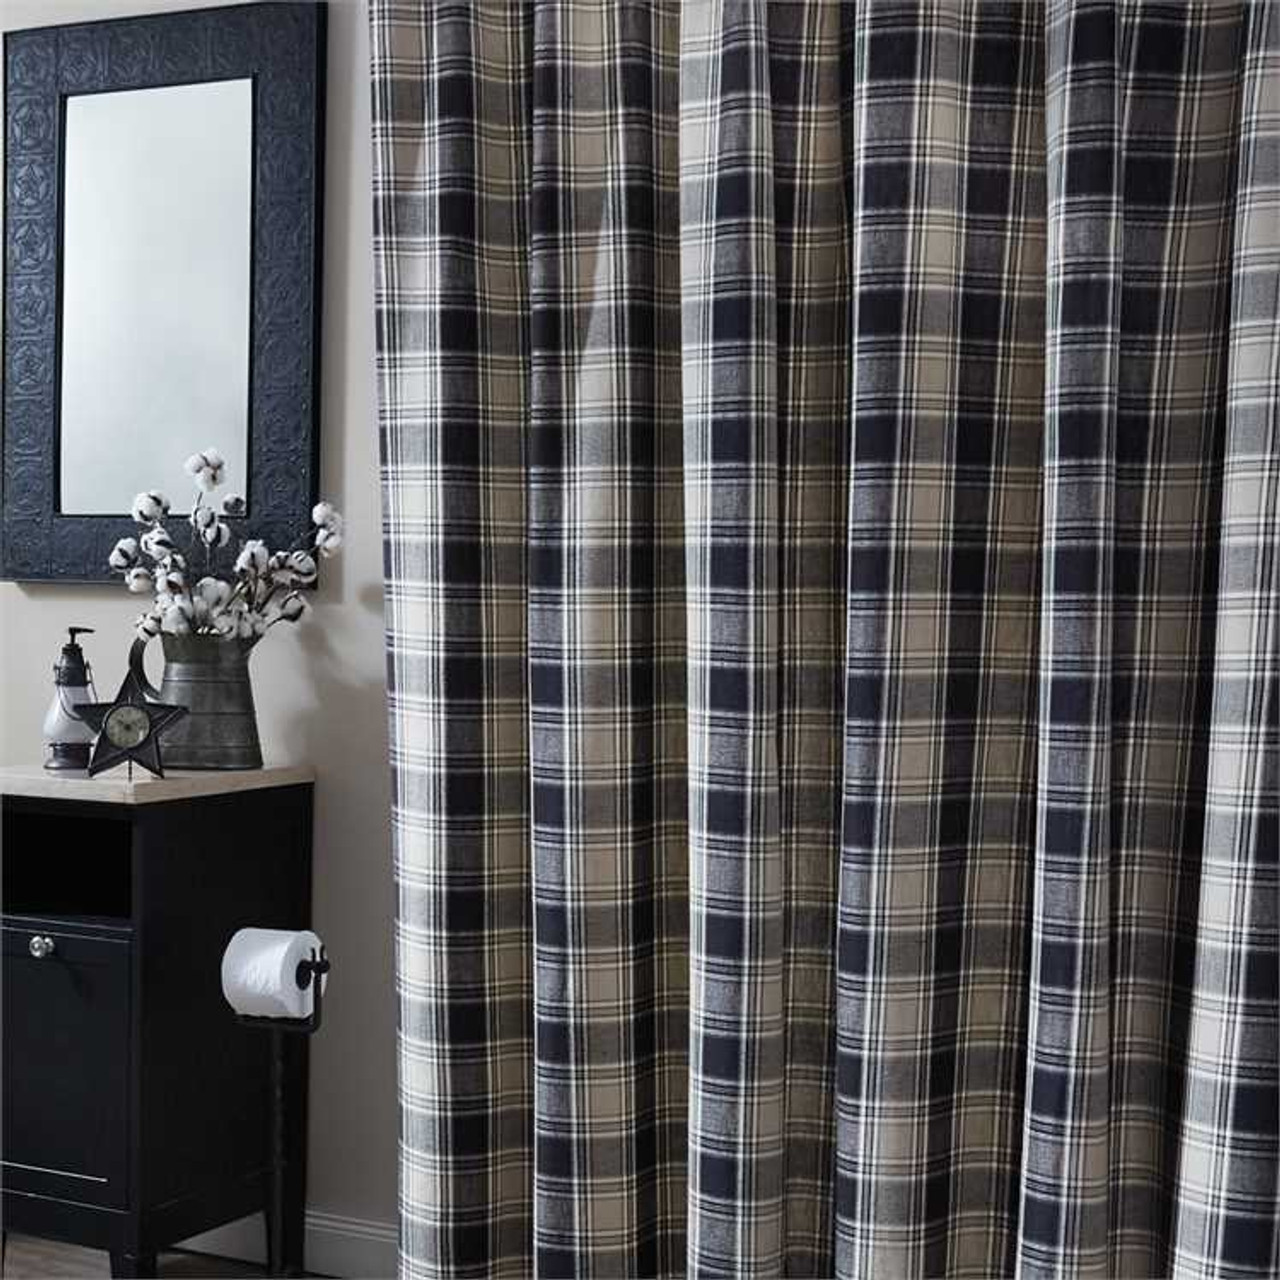 Soapstone Shower Curtain - Size - 72 x 72 - Jake\'s Country Trading Post